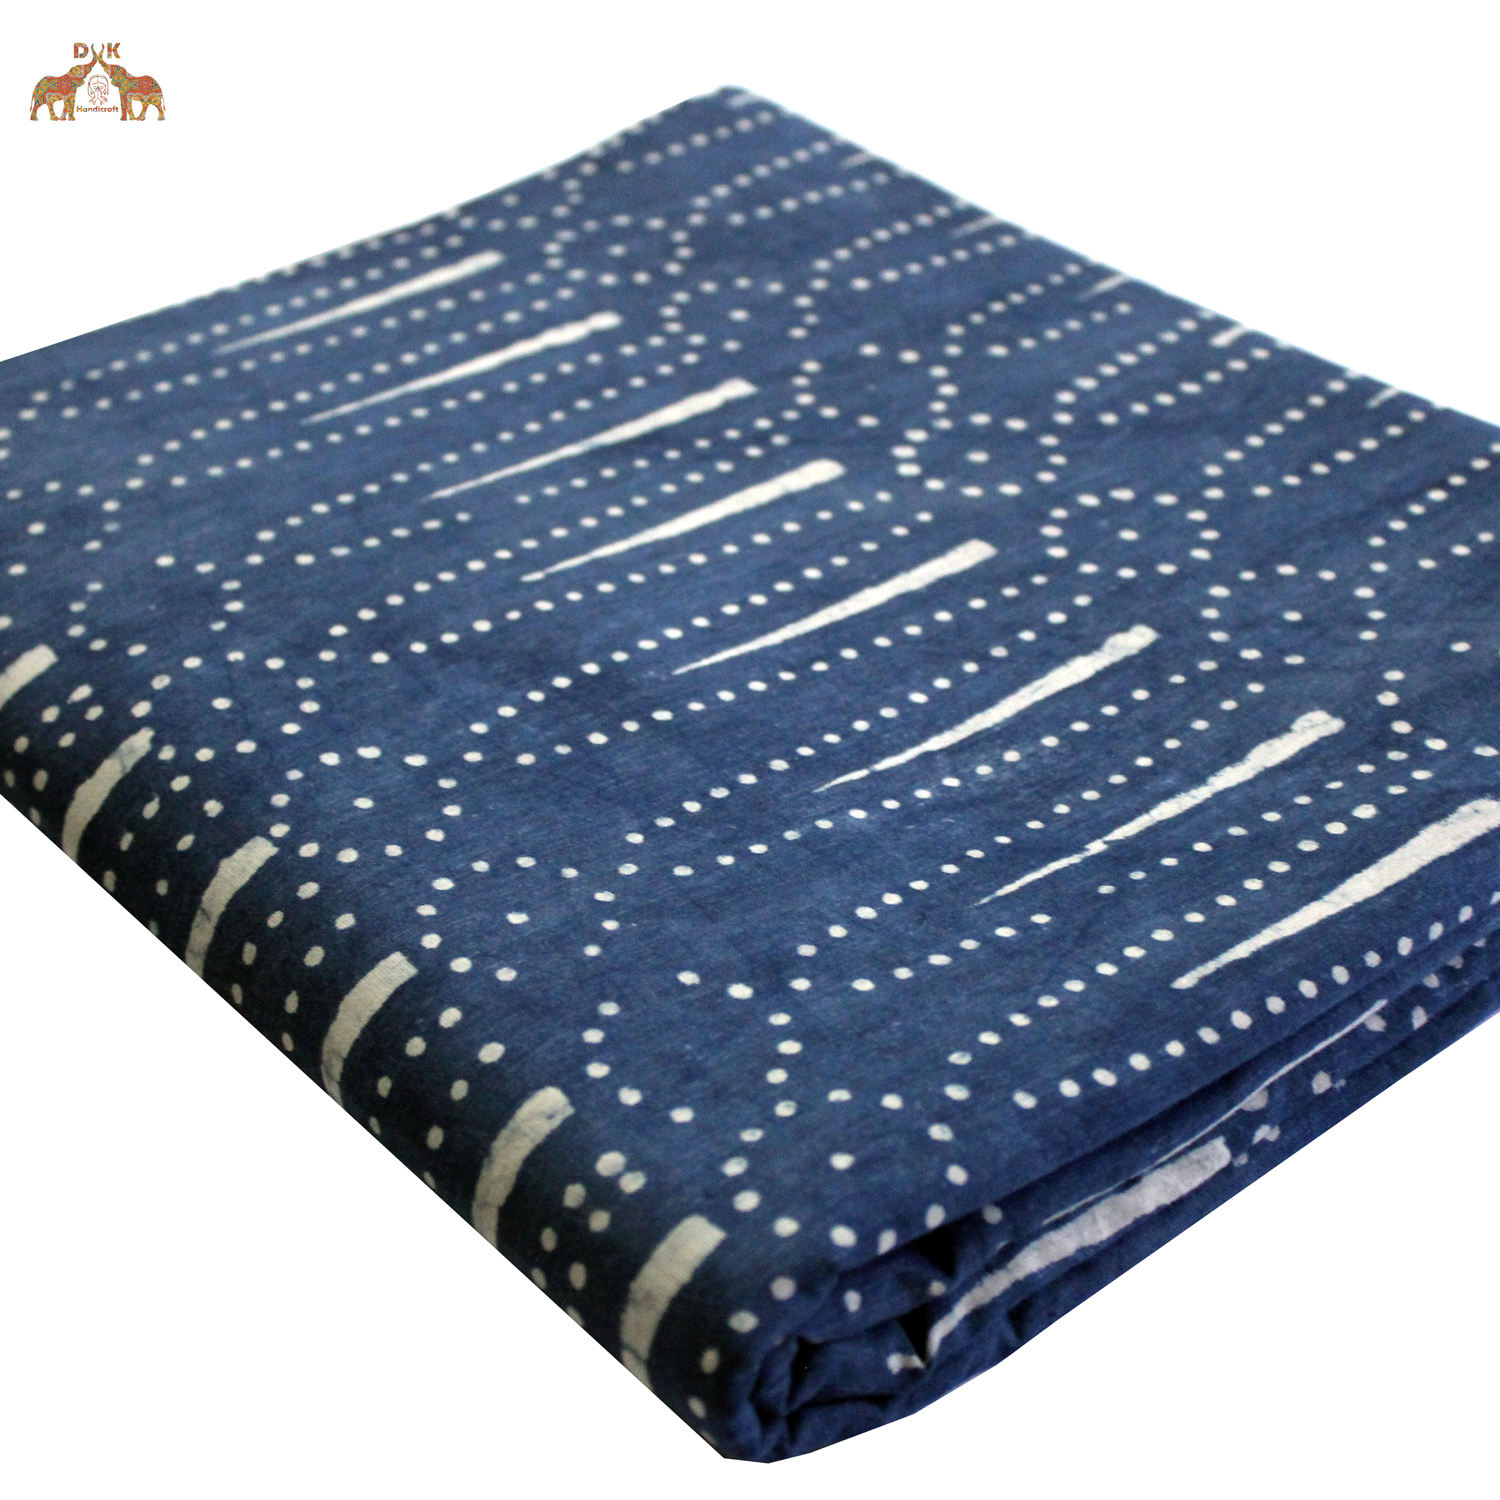 Vegetable Dyed Hand Block Printed Cotton Dabu Fabric Natural Cotton Indigo Fabric